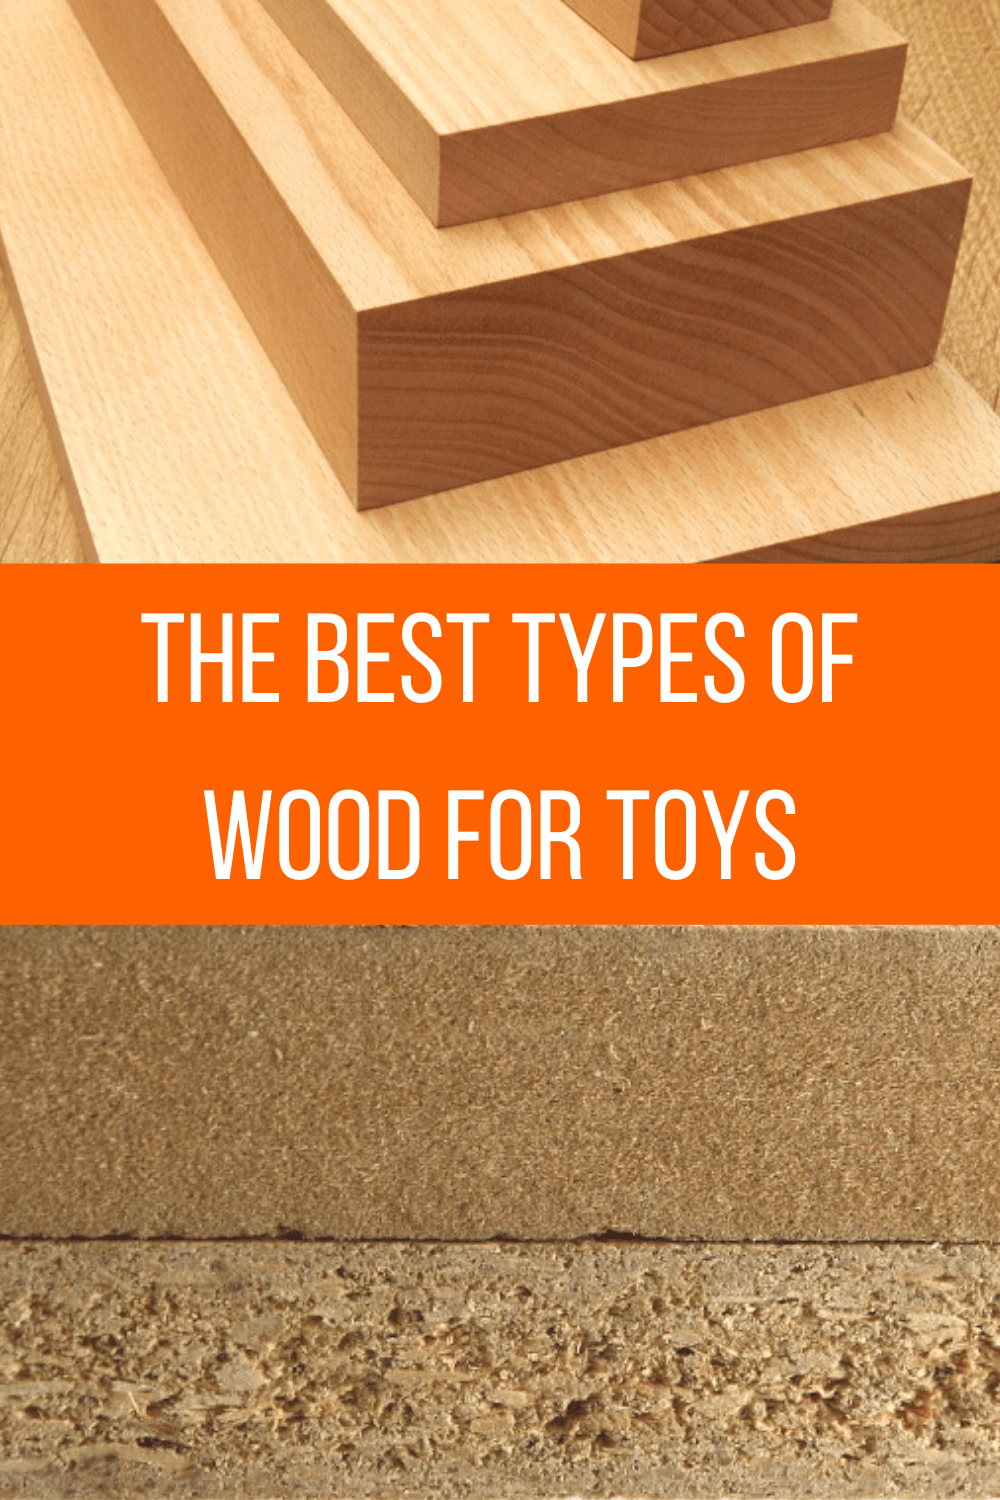 Solid Wood vs MDF for toys